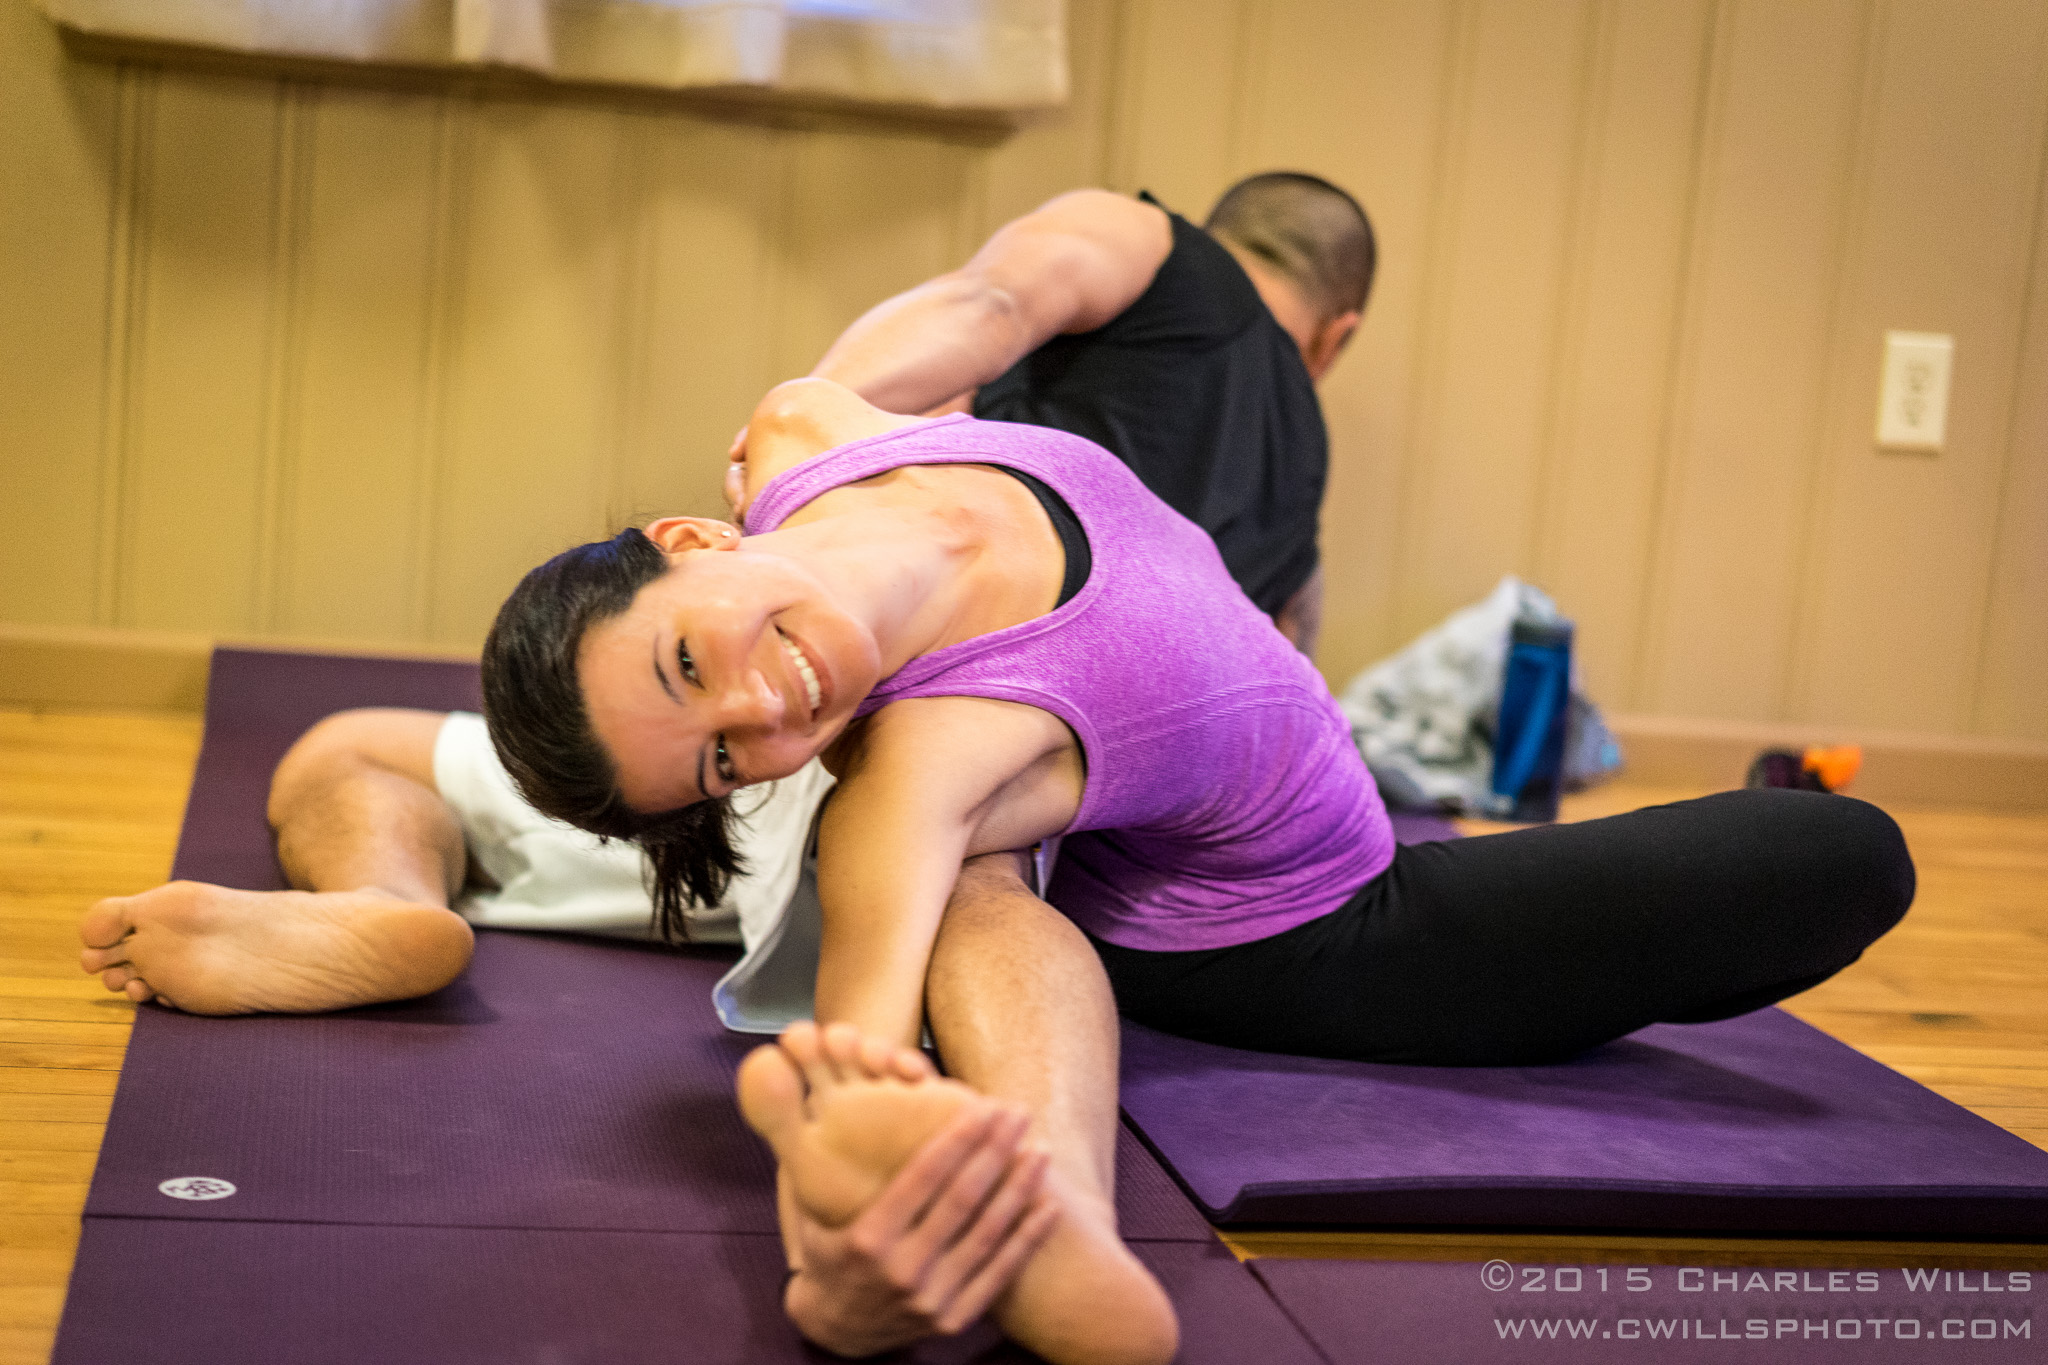 Seated wide legged stretch and twist with partner